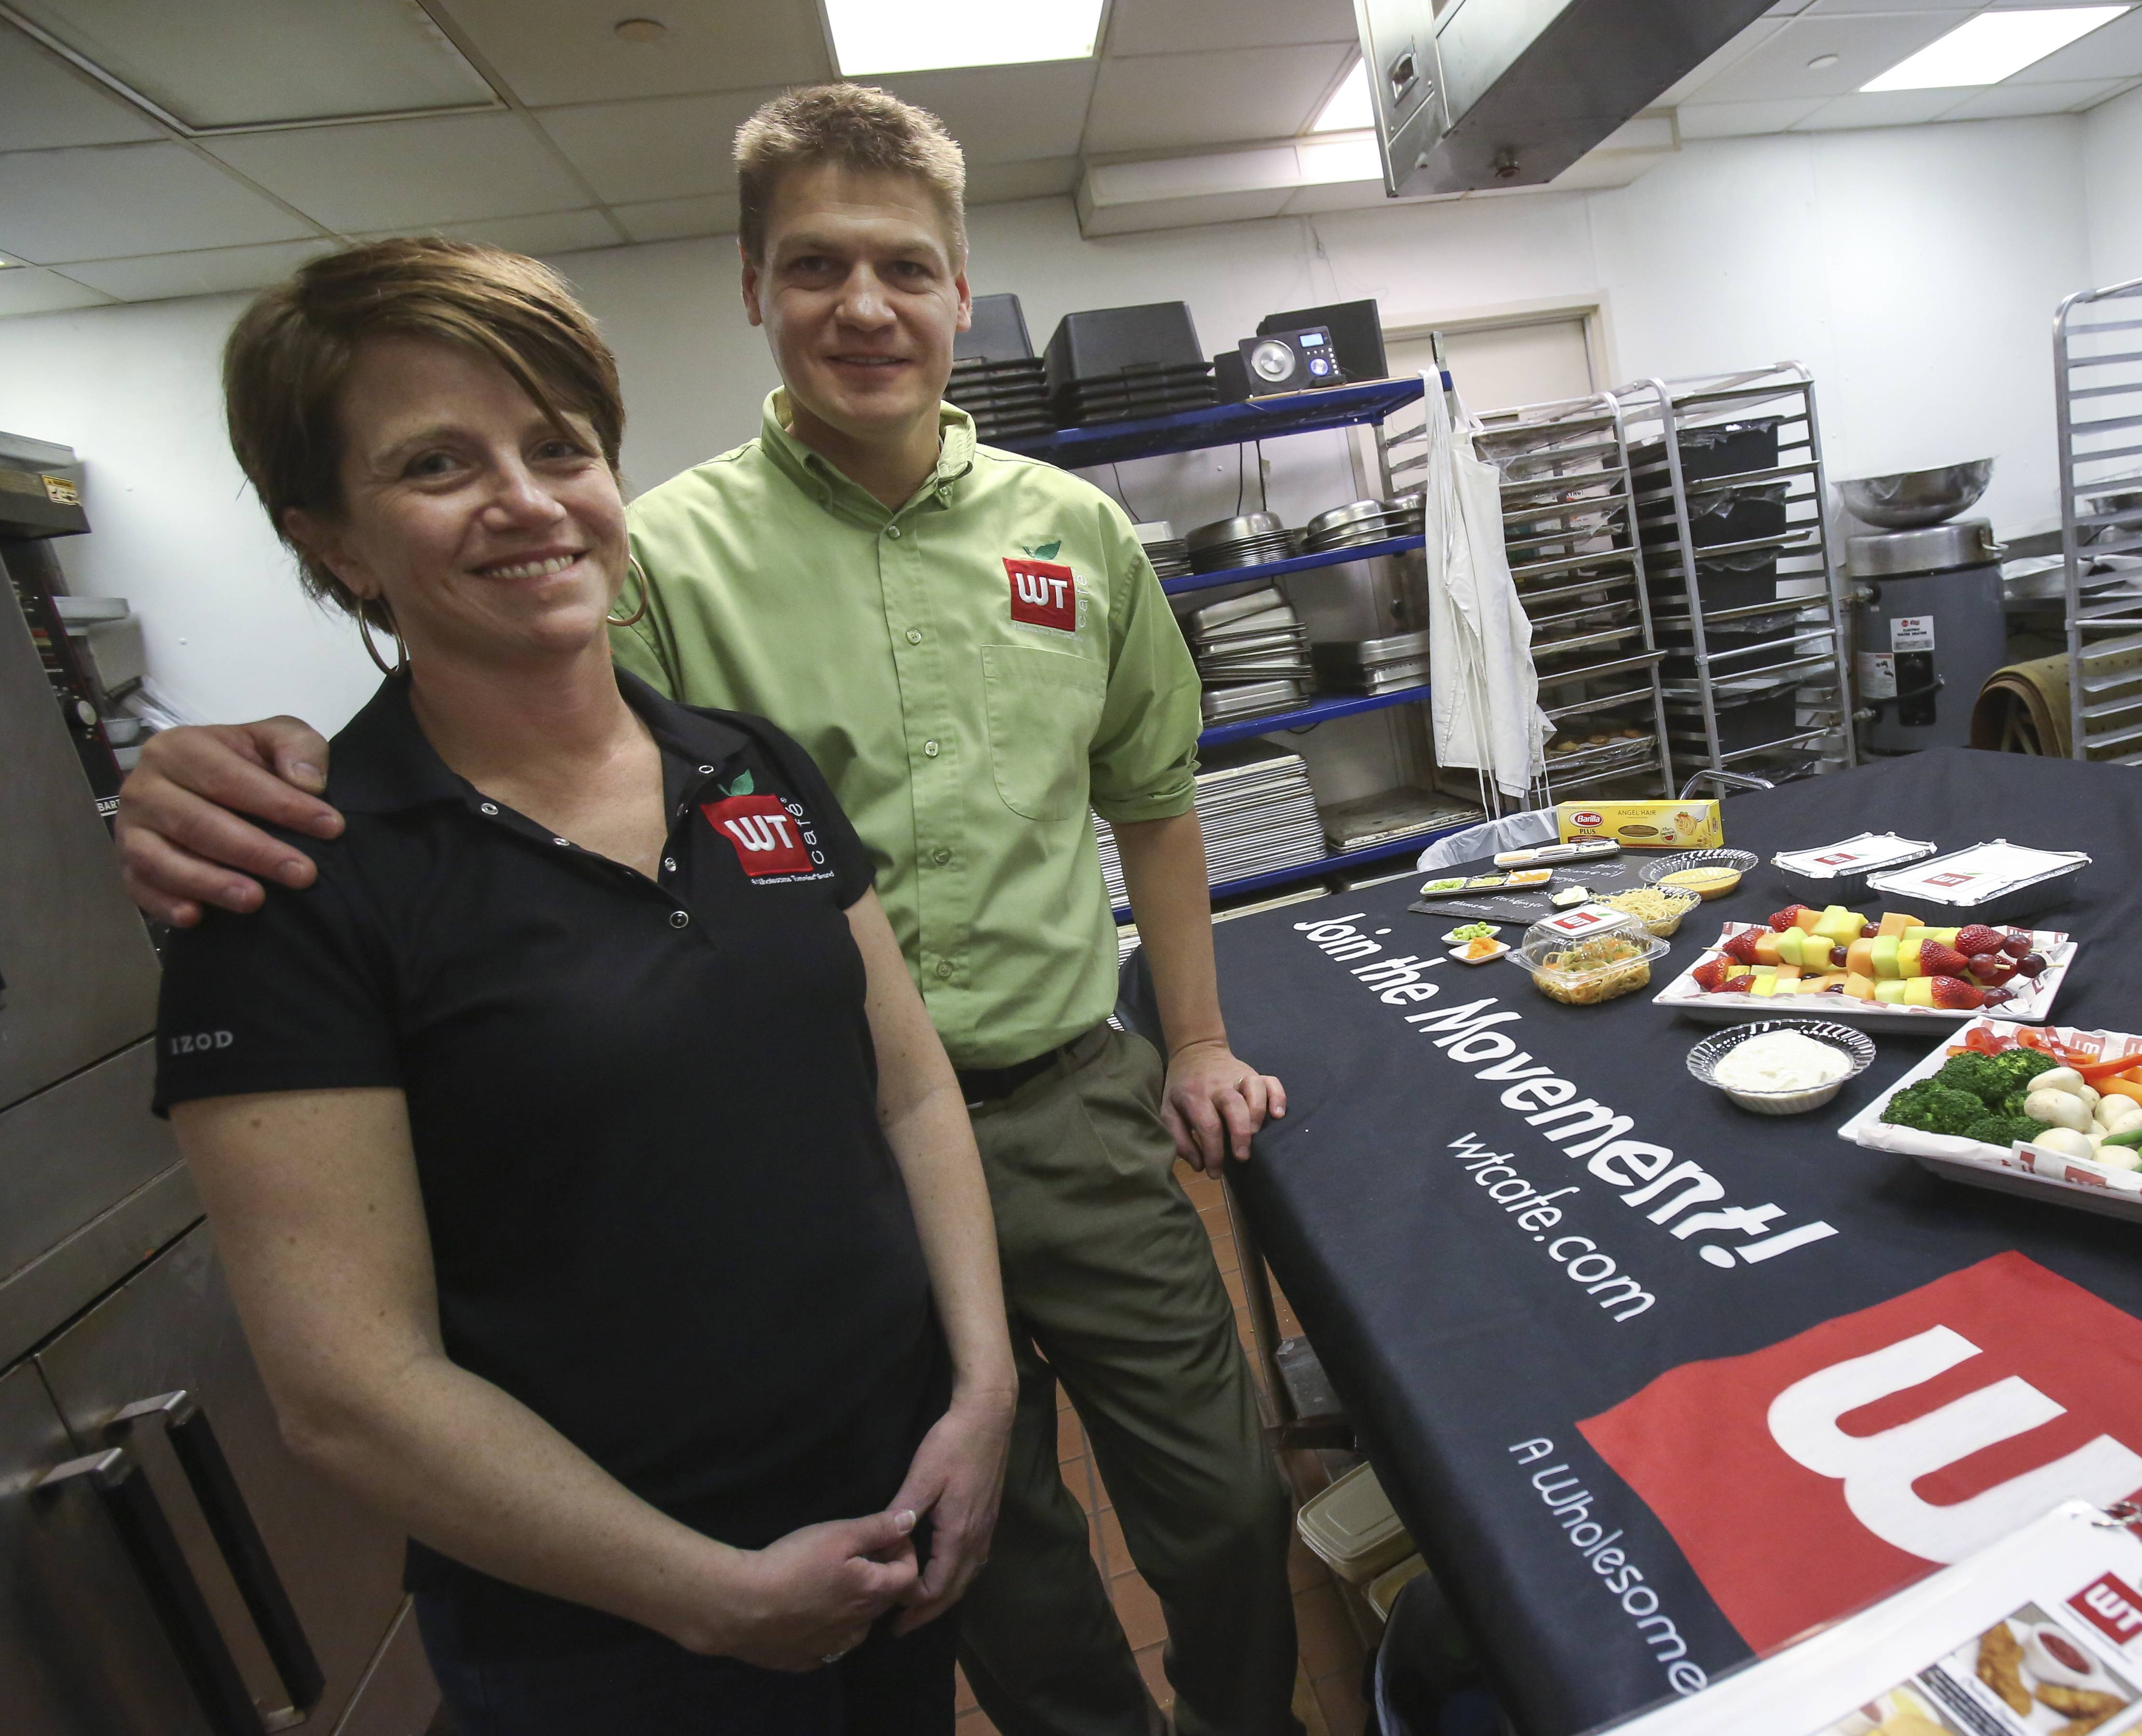 Mimi and Matt Tolkin of Lombard are launching WT Cafe Naperville, a new school lunch business with a focus on health and fresh ingredients.